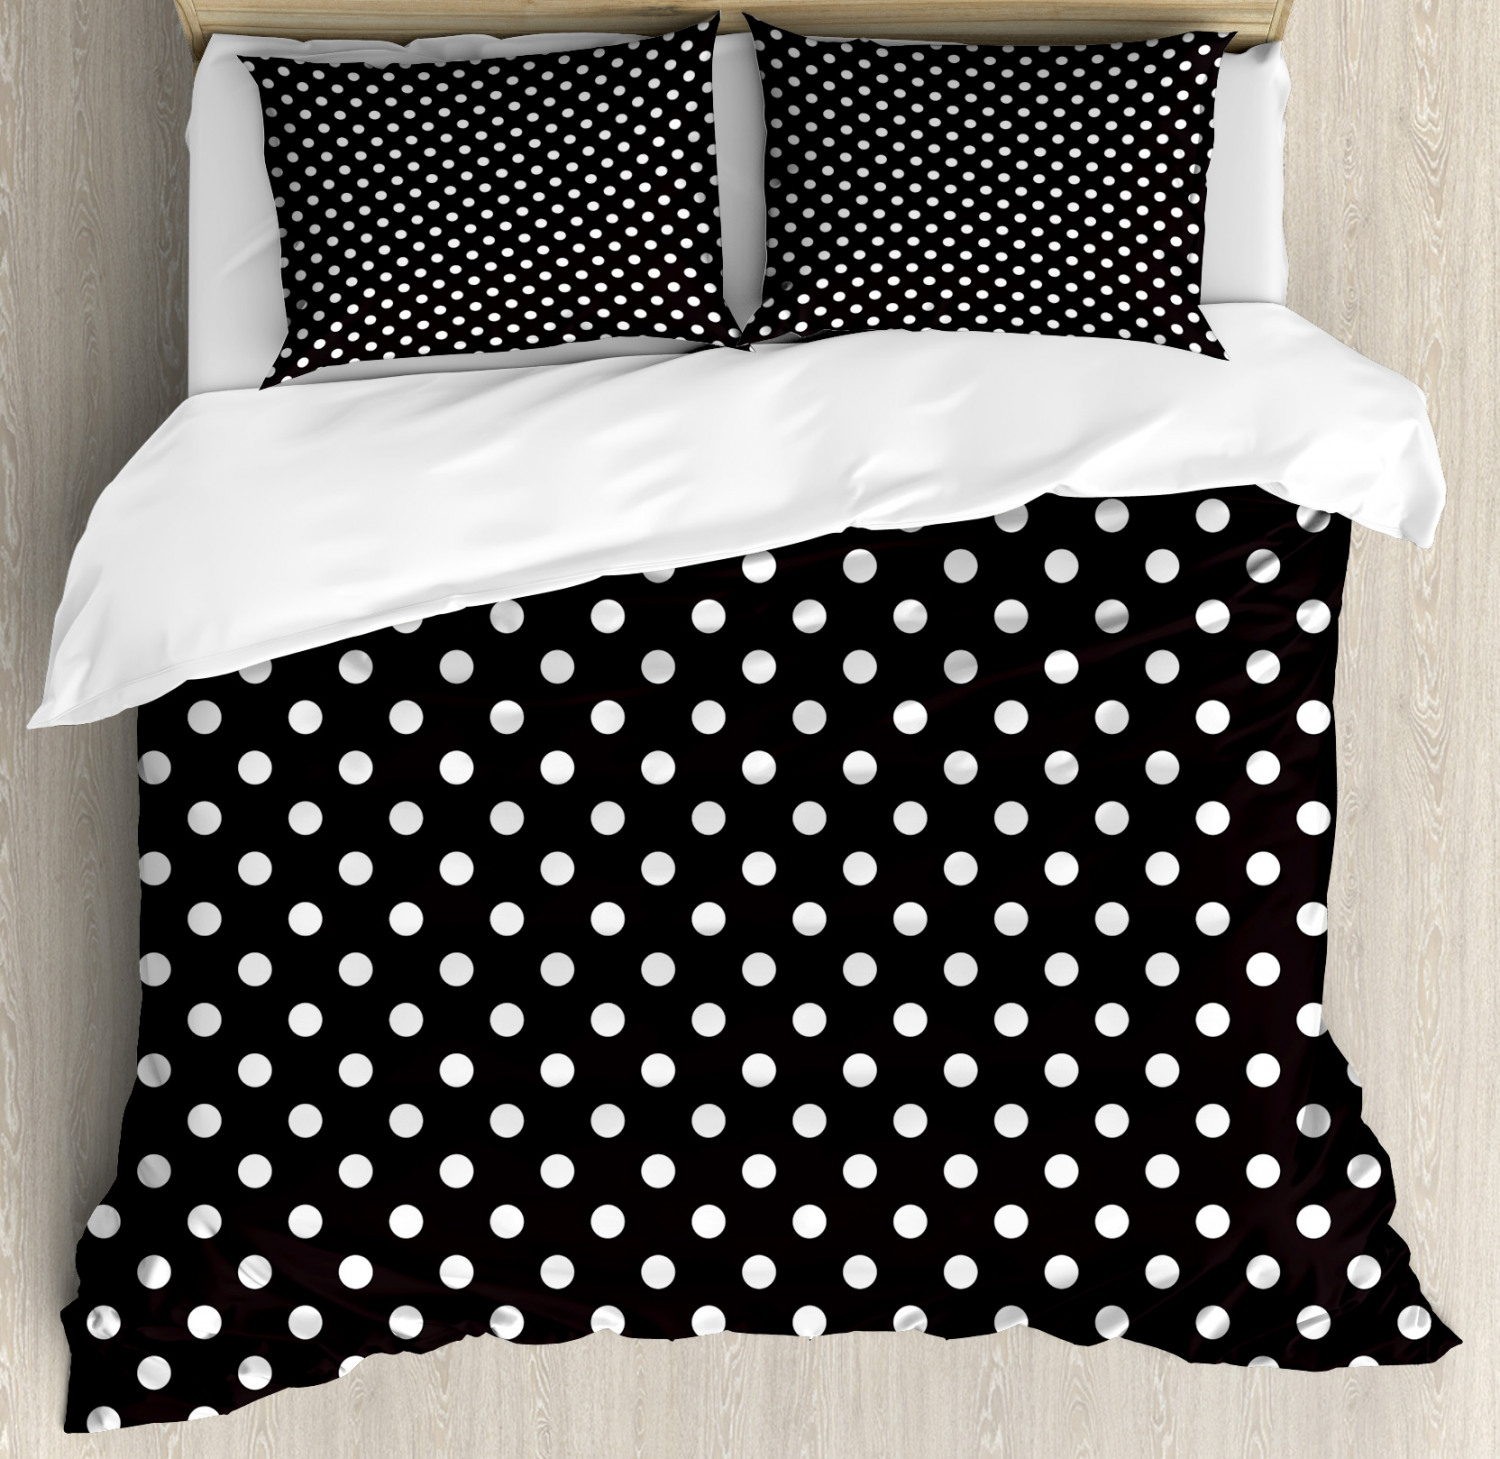 Black And White Duvet Cover Set Classical Pattern Of White Polka Dots On Black Traditional Vintage Design Decorative Bedding Set With Pillow Shams Onyx White By Ambesonne Walmart Com Walmart Com